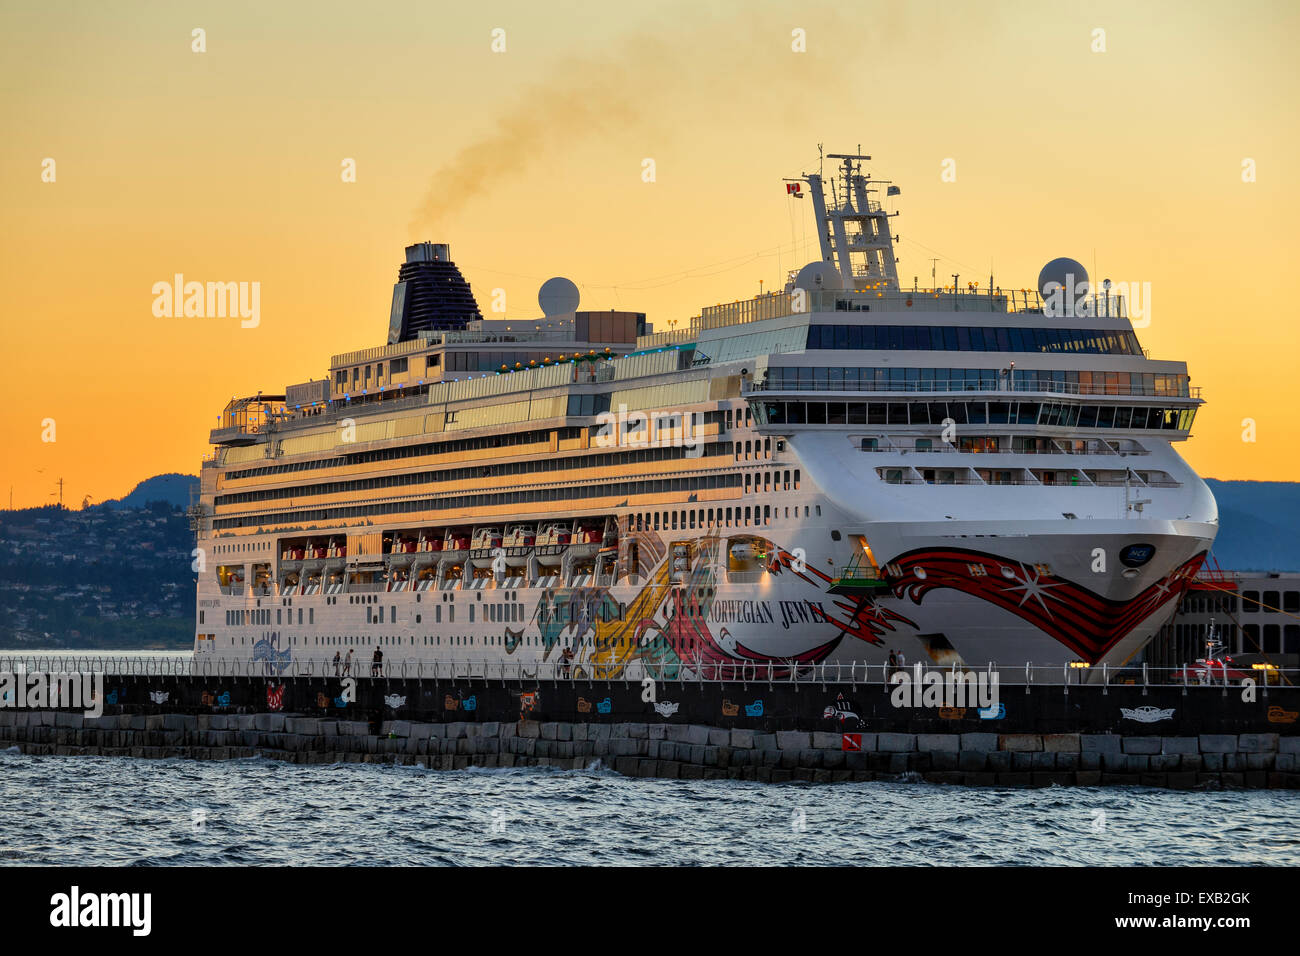 Cruise ship Norwegian Jewel docked at Ogden Point port at sunset-Victoria, British Columbia, Canada. - Stock Image